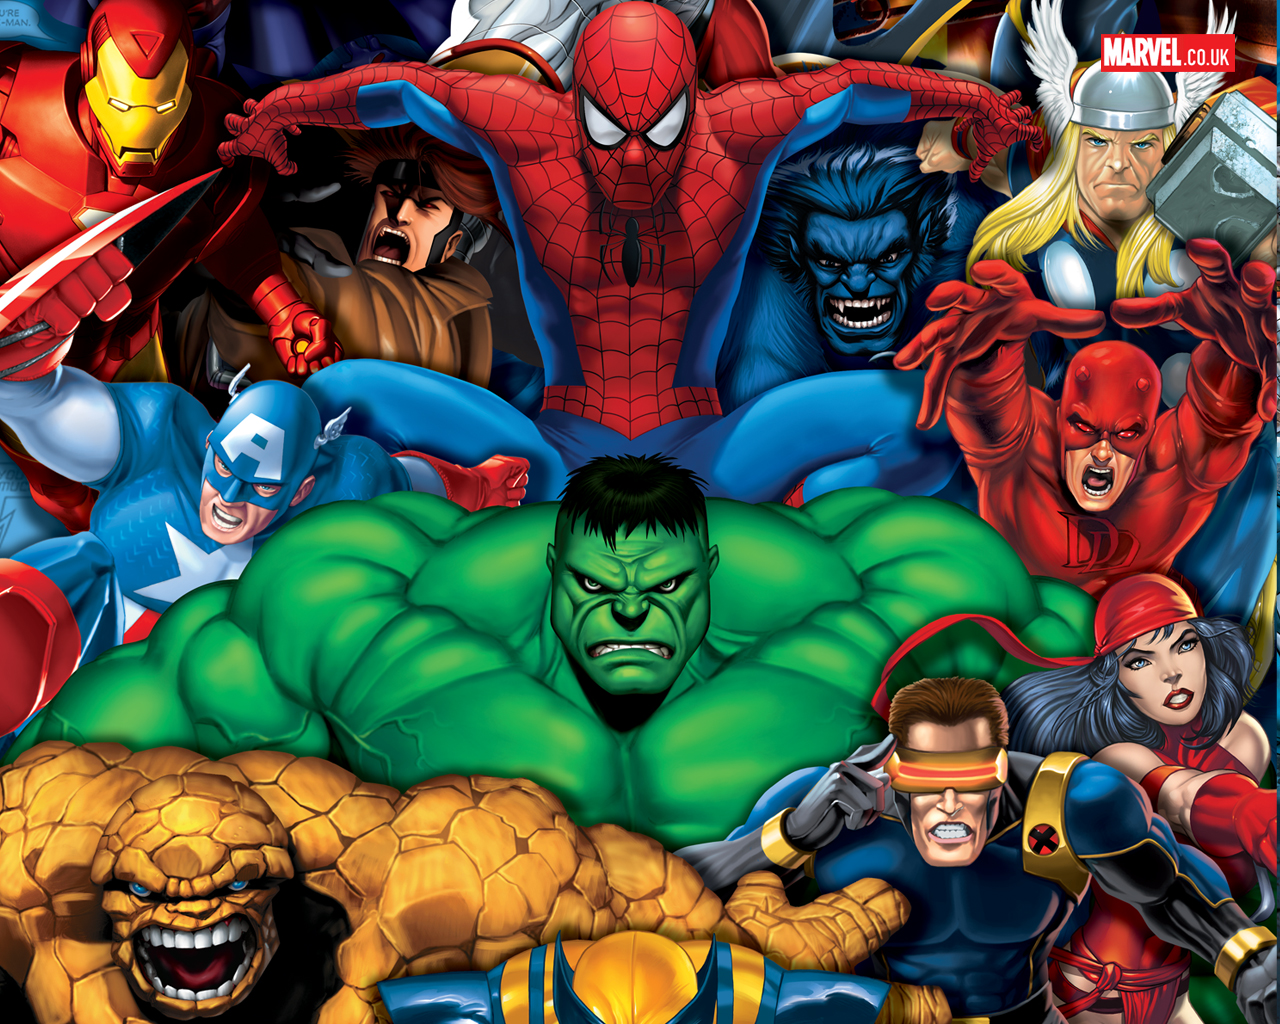 Historia da marvel comics